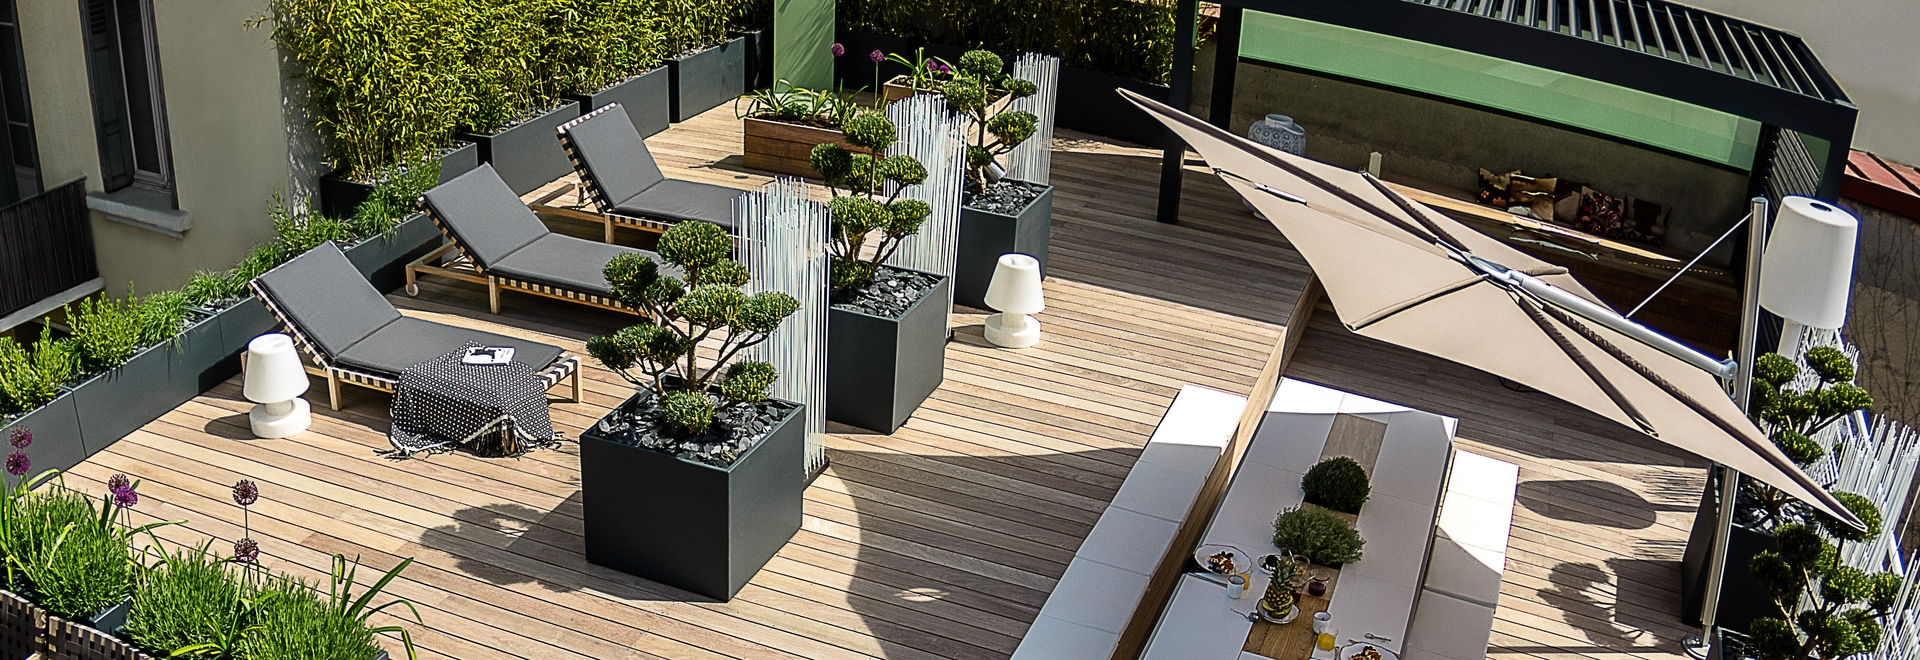 Image'In planters on rooftop